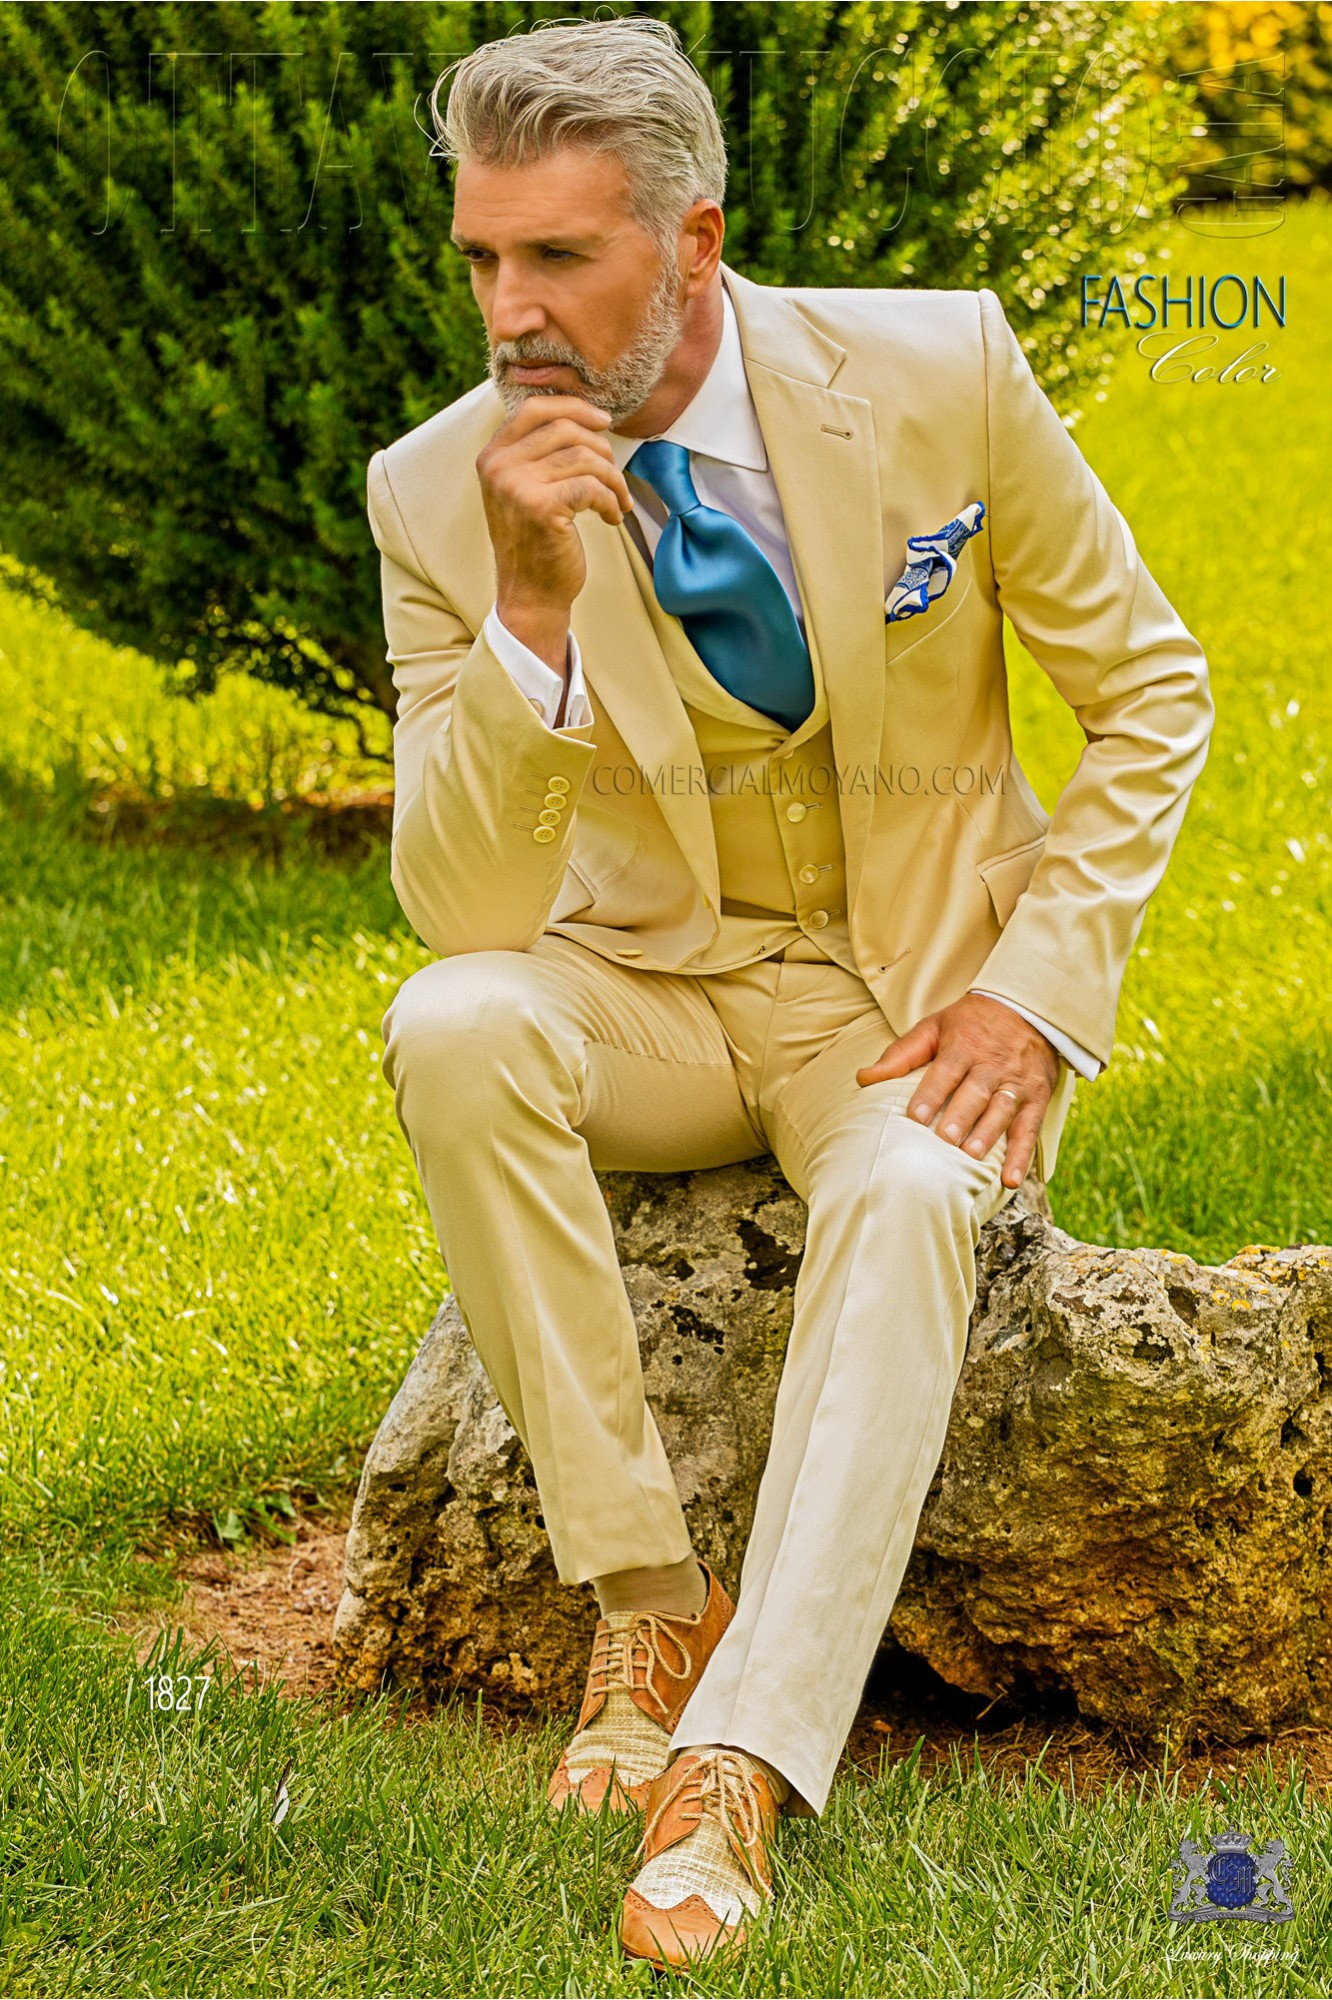 Italian bespoke pure cotton satin beige suit